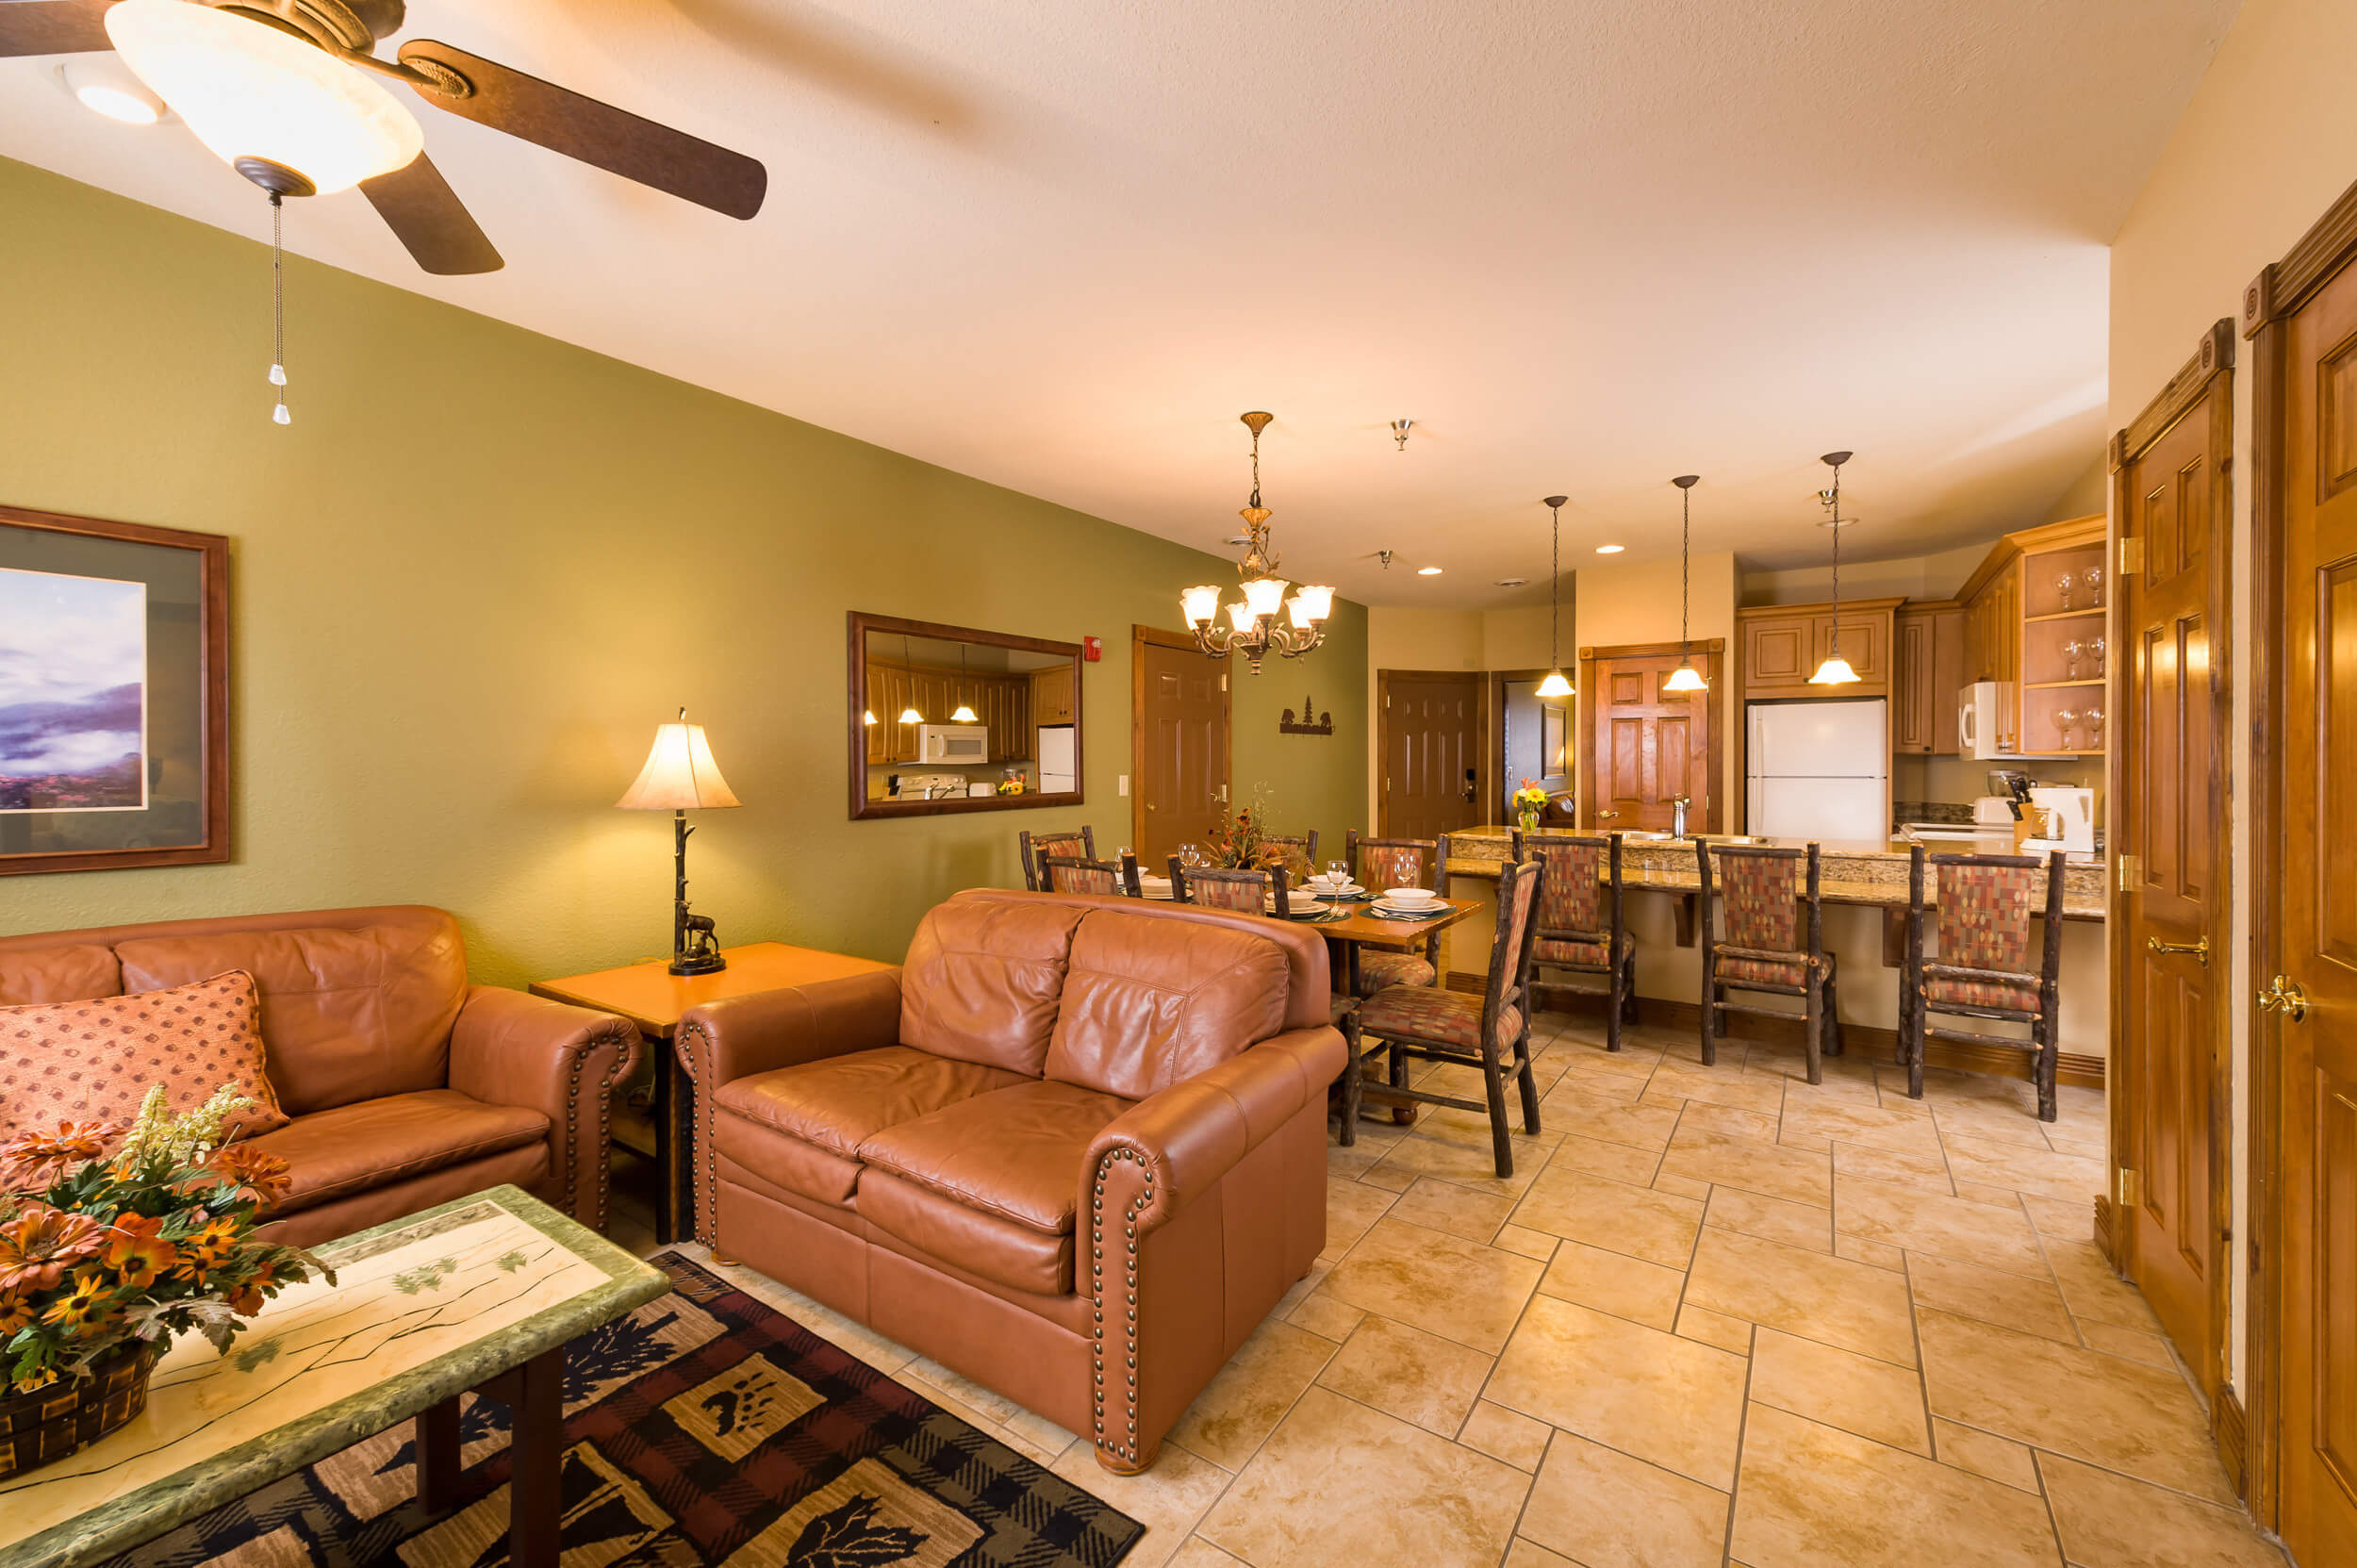 Living area and dining area in spacious villa | Westgate Smoky Mountain Resort & Spa